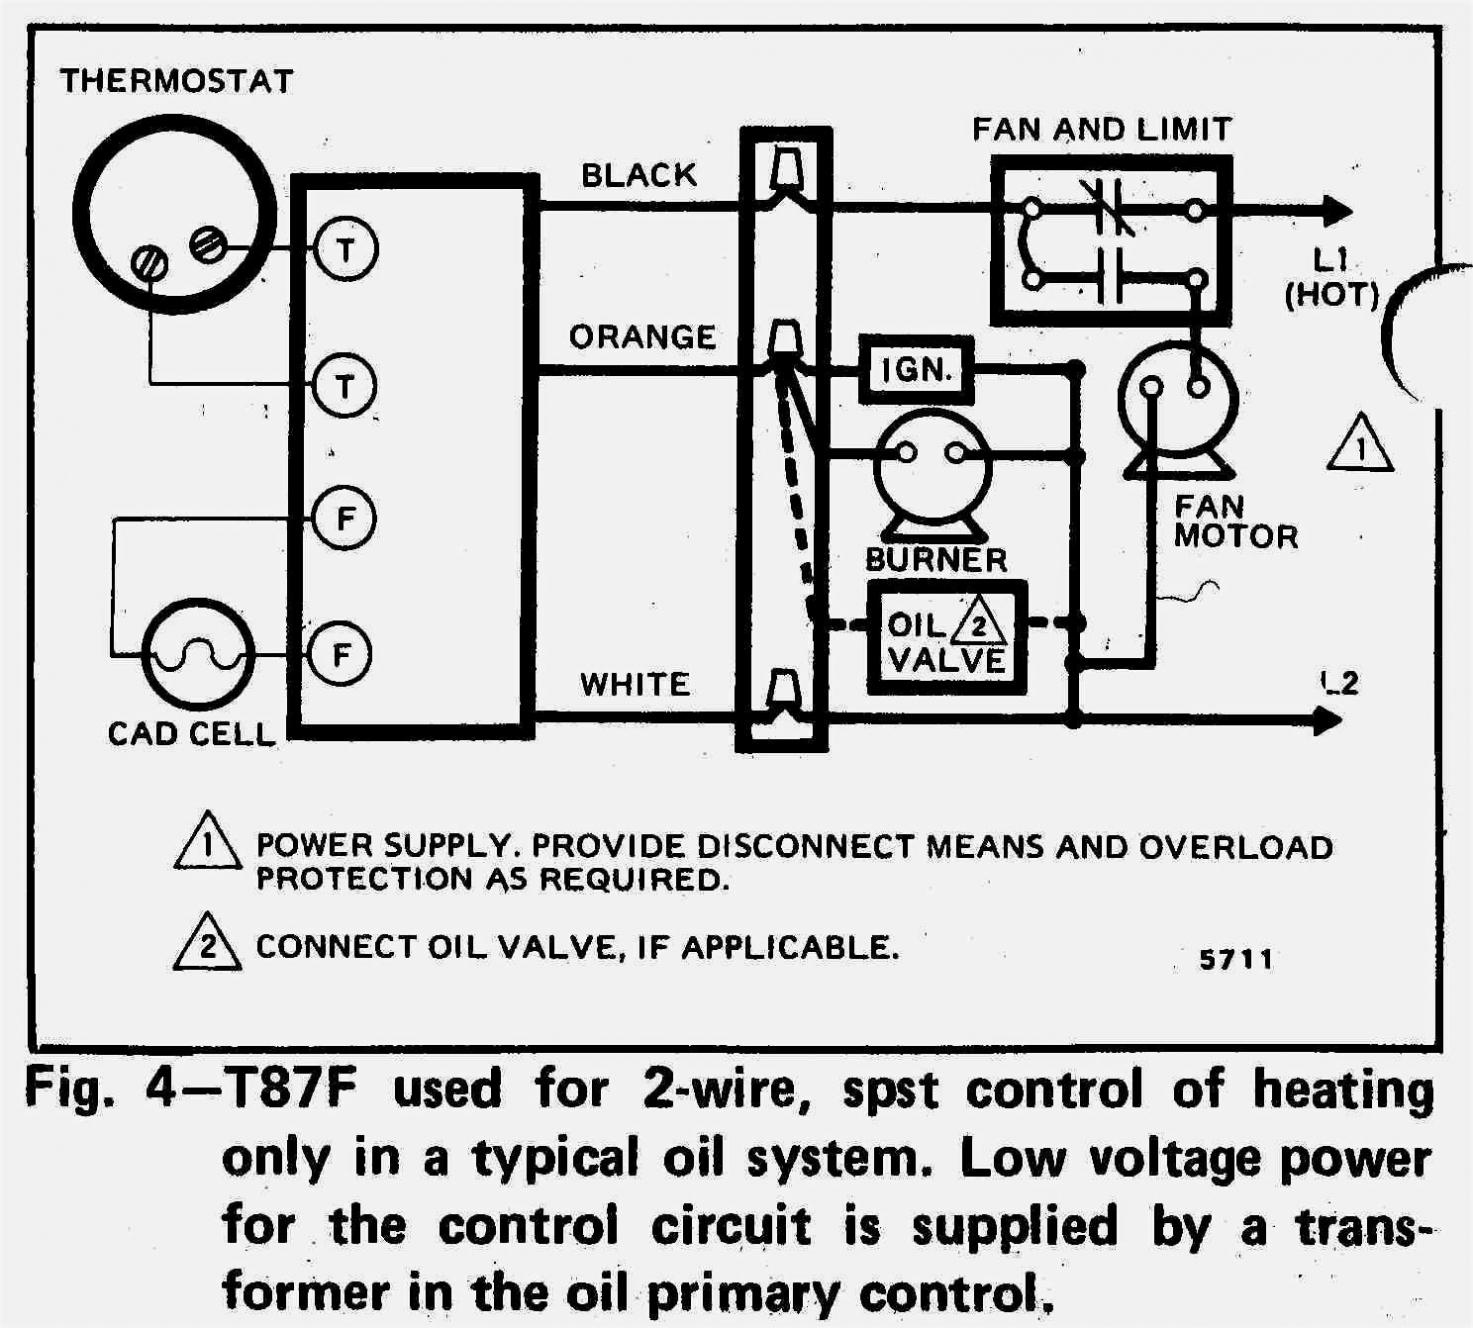 Signal Stat 900 Wiring Diagram – Signal Stat 900 Wiring Diagram - Signal Stat 900 Wiring Diagram